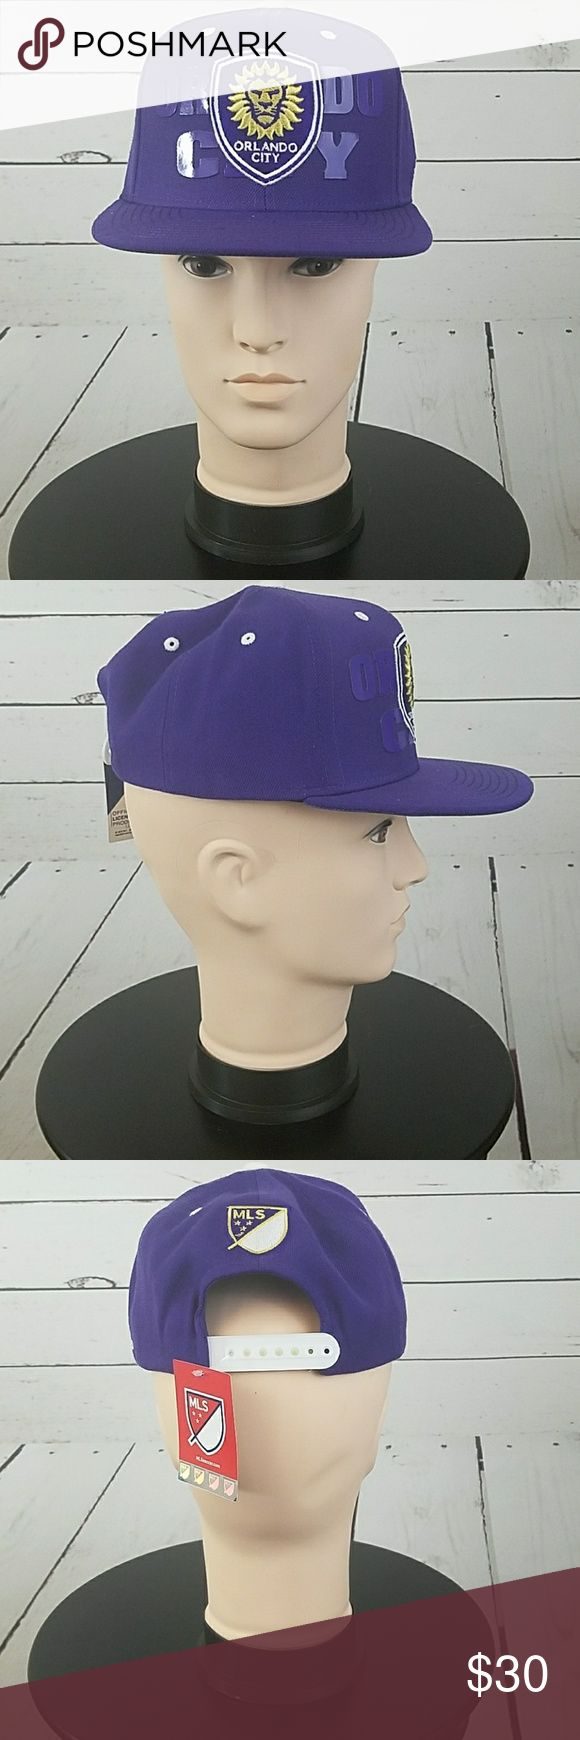 Orlando City Soccer Snap Back Cap MLS Academy Orlando City Soccer Snap Back Cap MLS Academy Brand New Adidas Accessories Hats